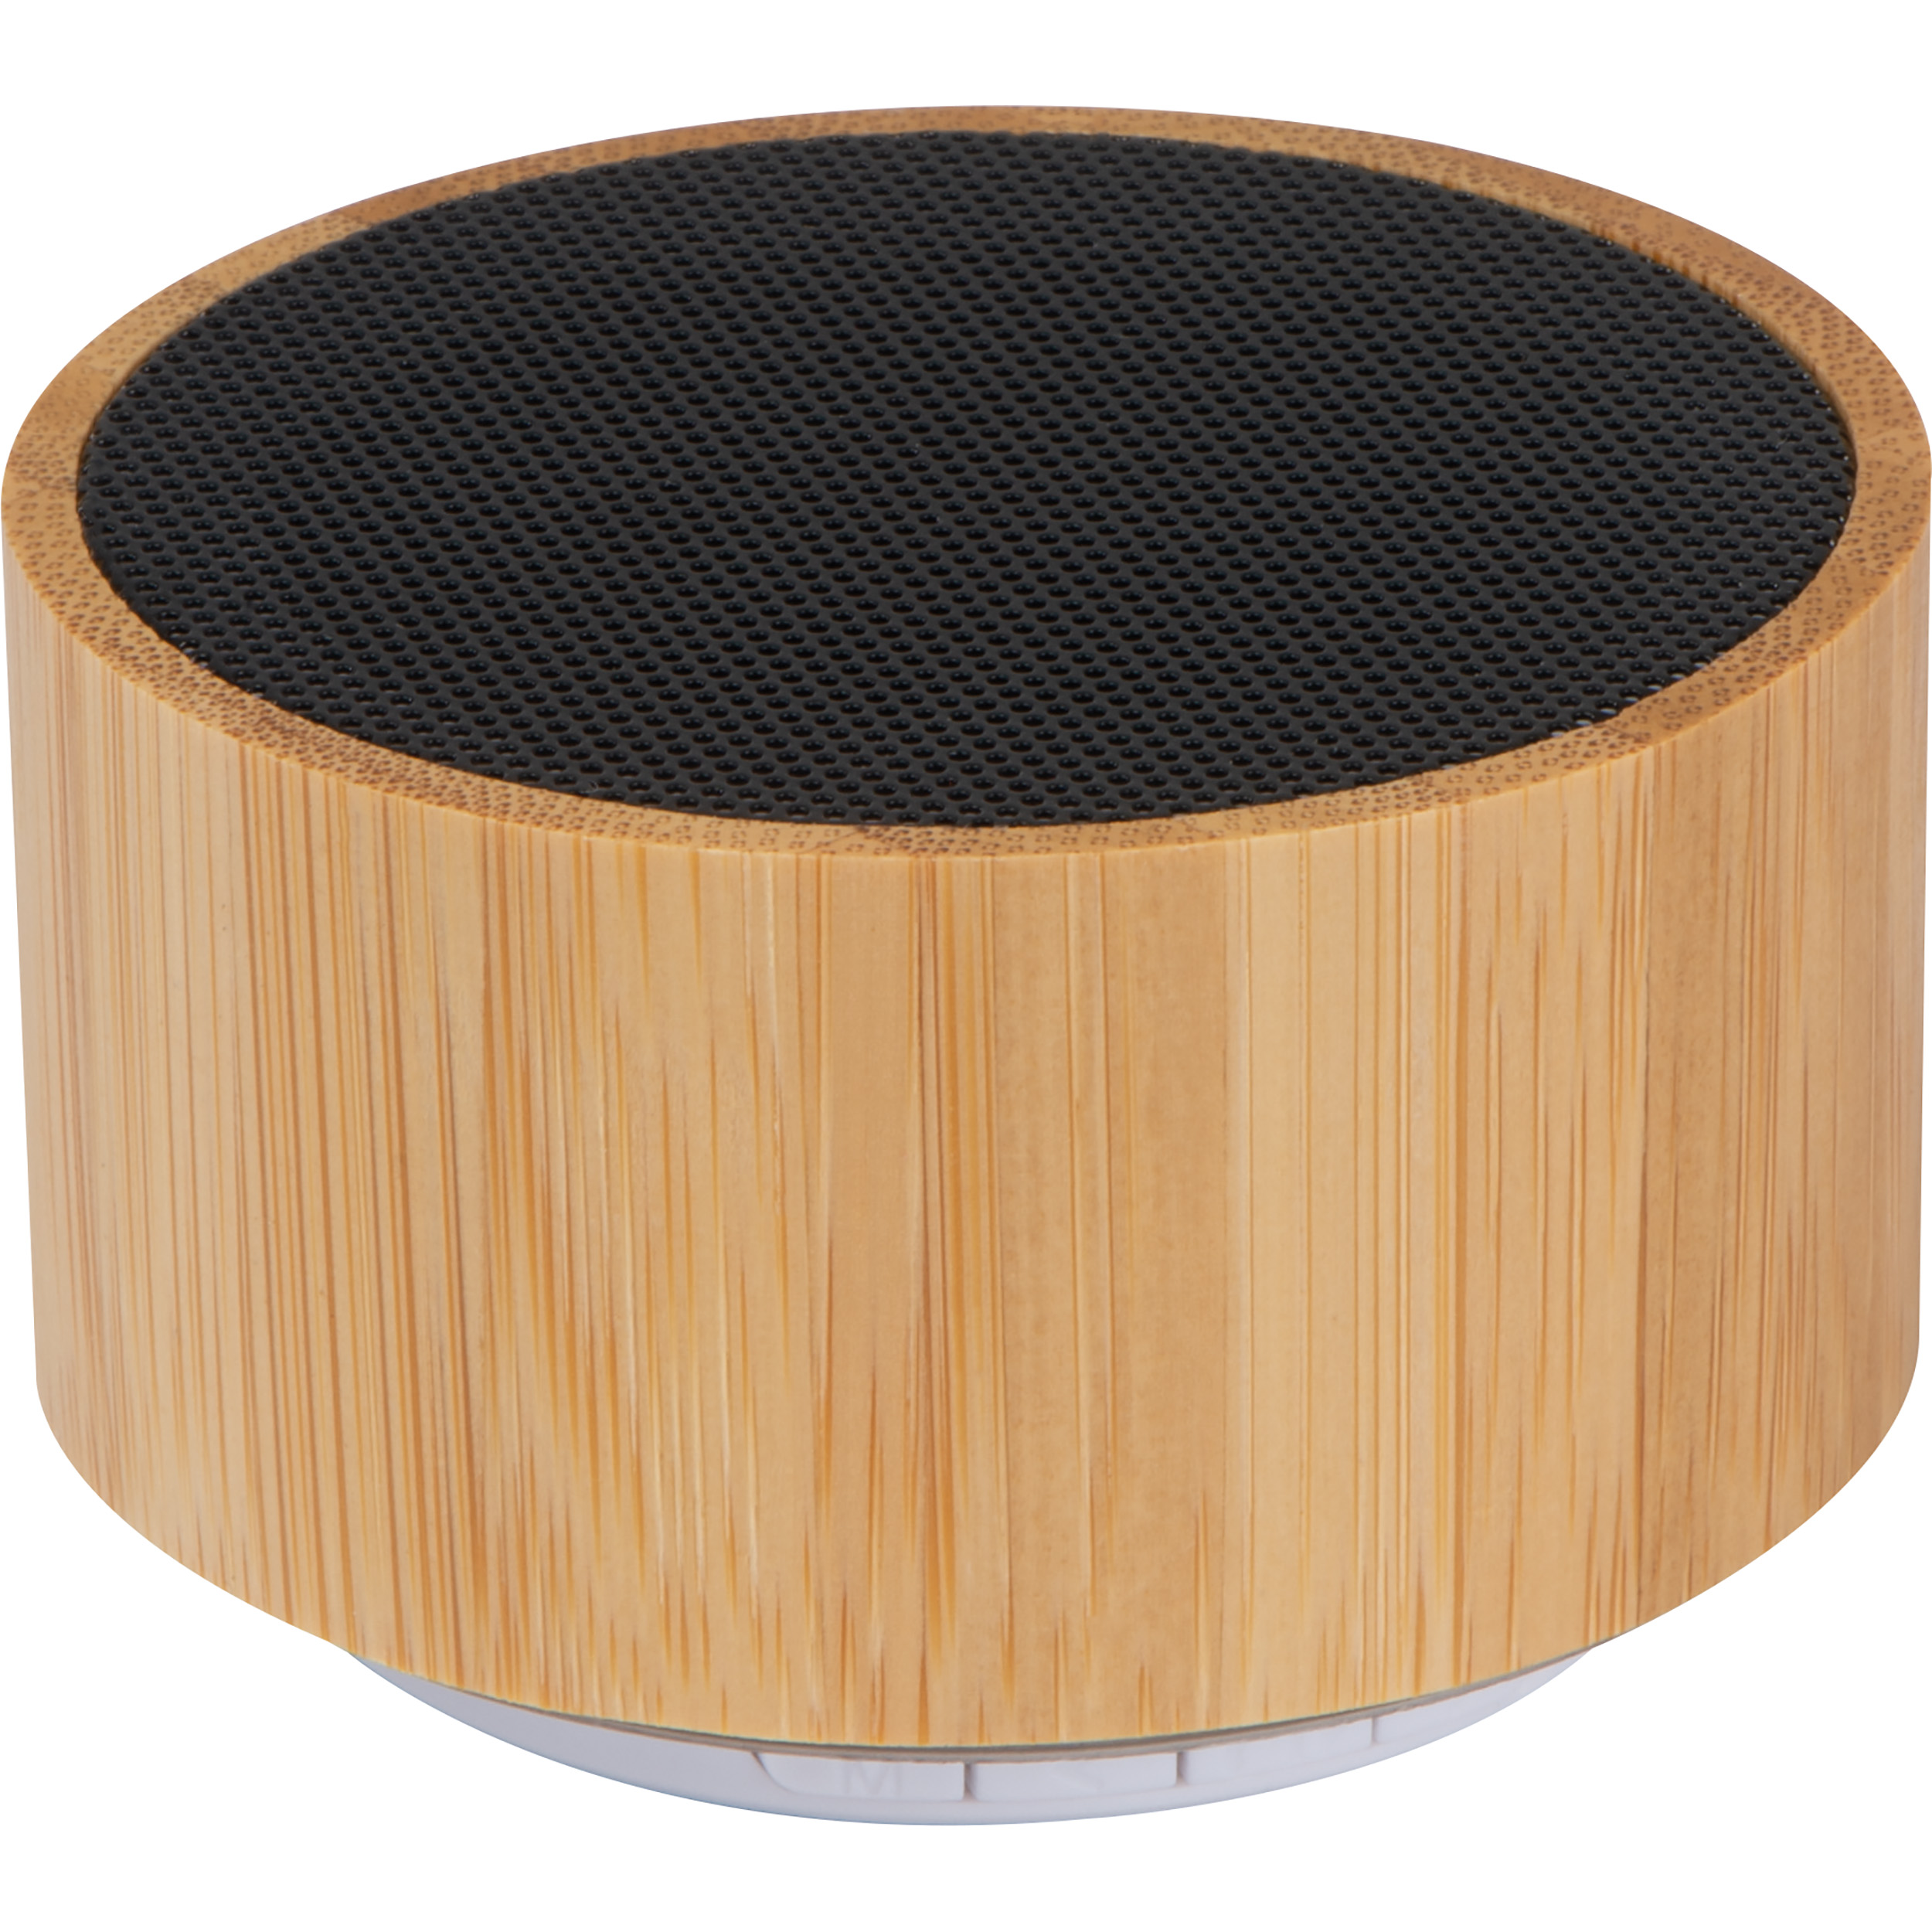 Bluetooth speaker with bamboo coating